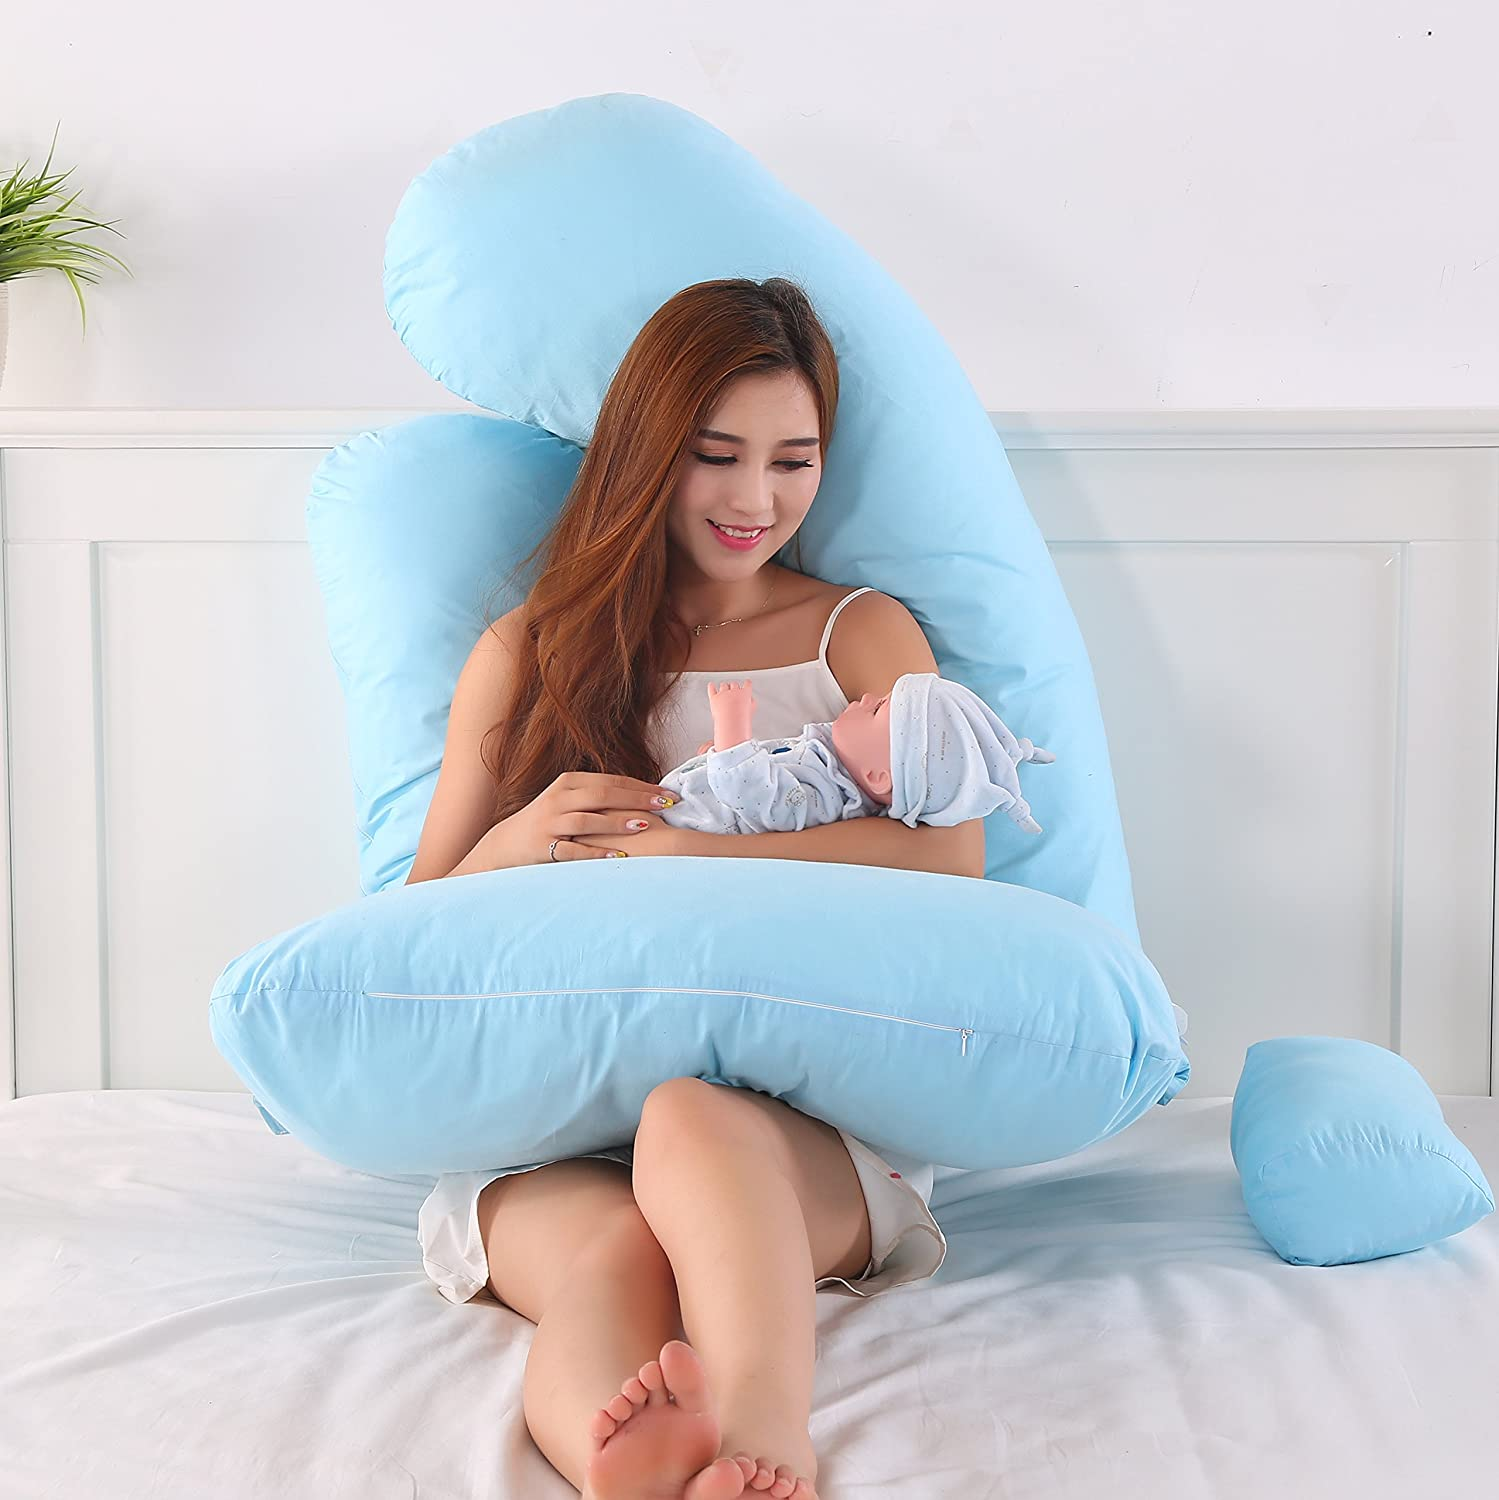 KWLET Pregnancy Pillow For Pregnant Women With Contoured U Shaped Back Support /& G-Shape Belly Support With Zipper Removable Cover Durable Up Grade Form Of U Shape